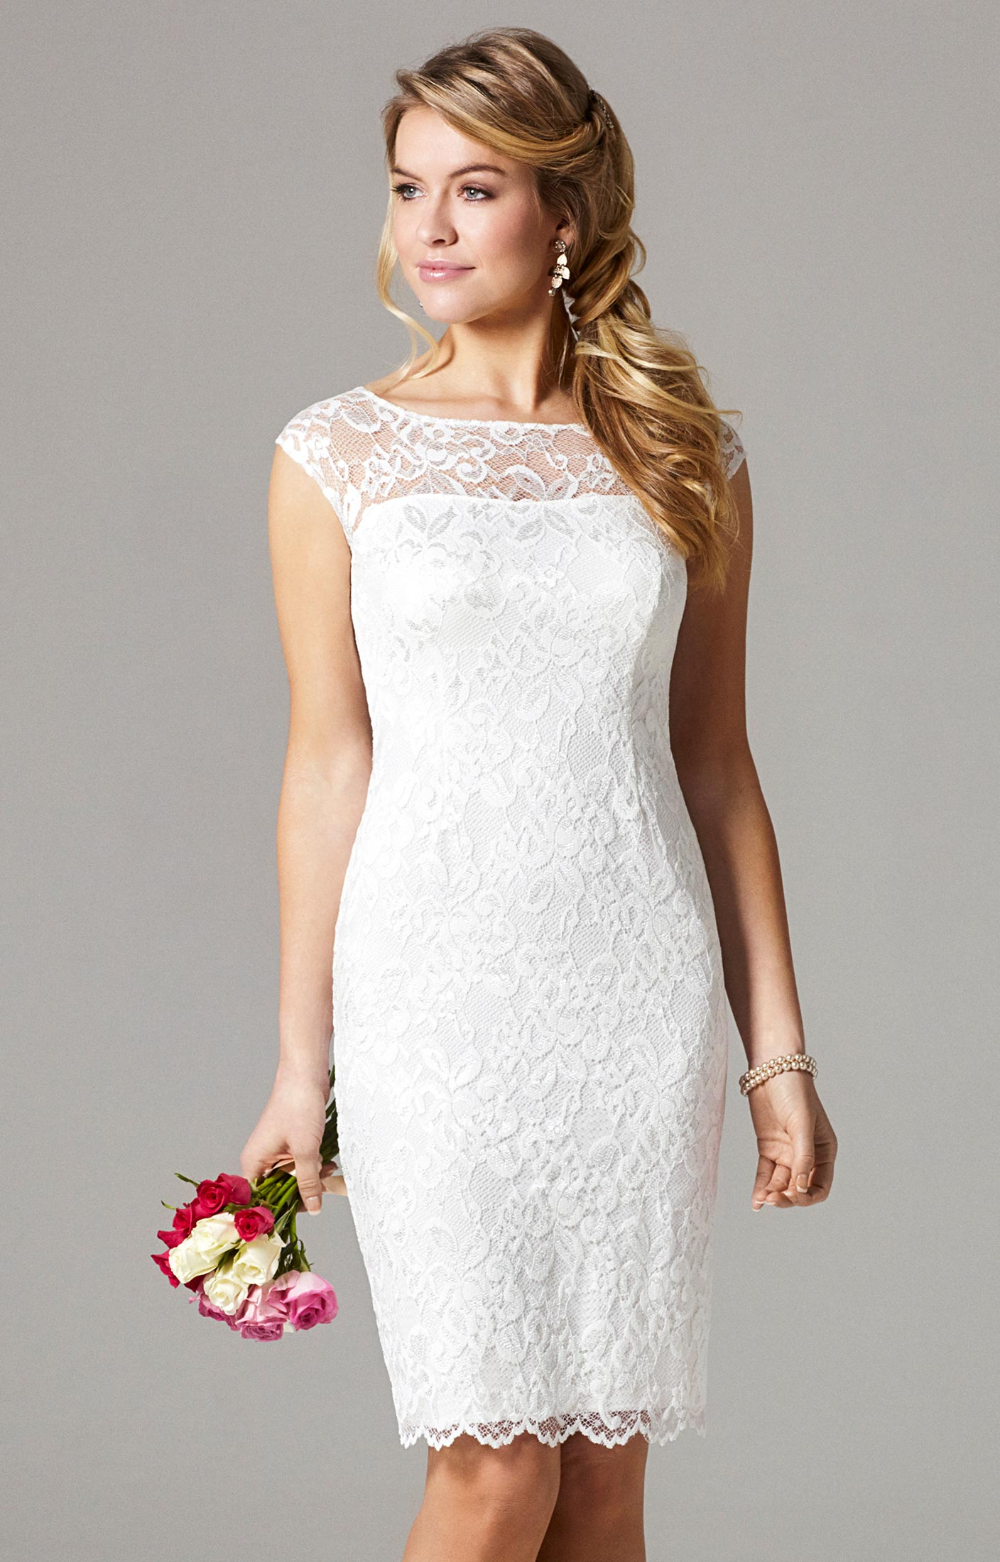 Amber Wedding Dress Short Ivory by Alie Street in 2020